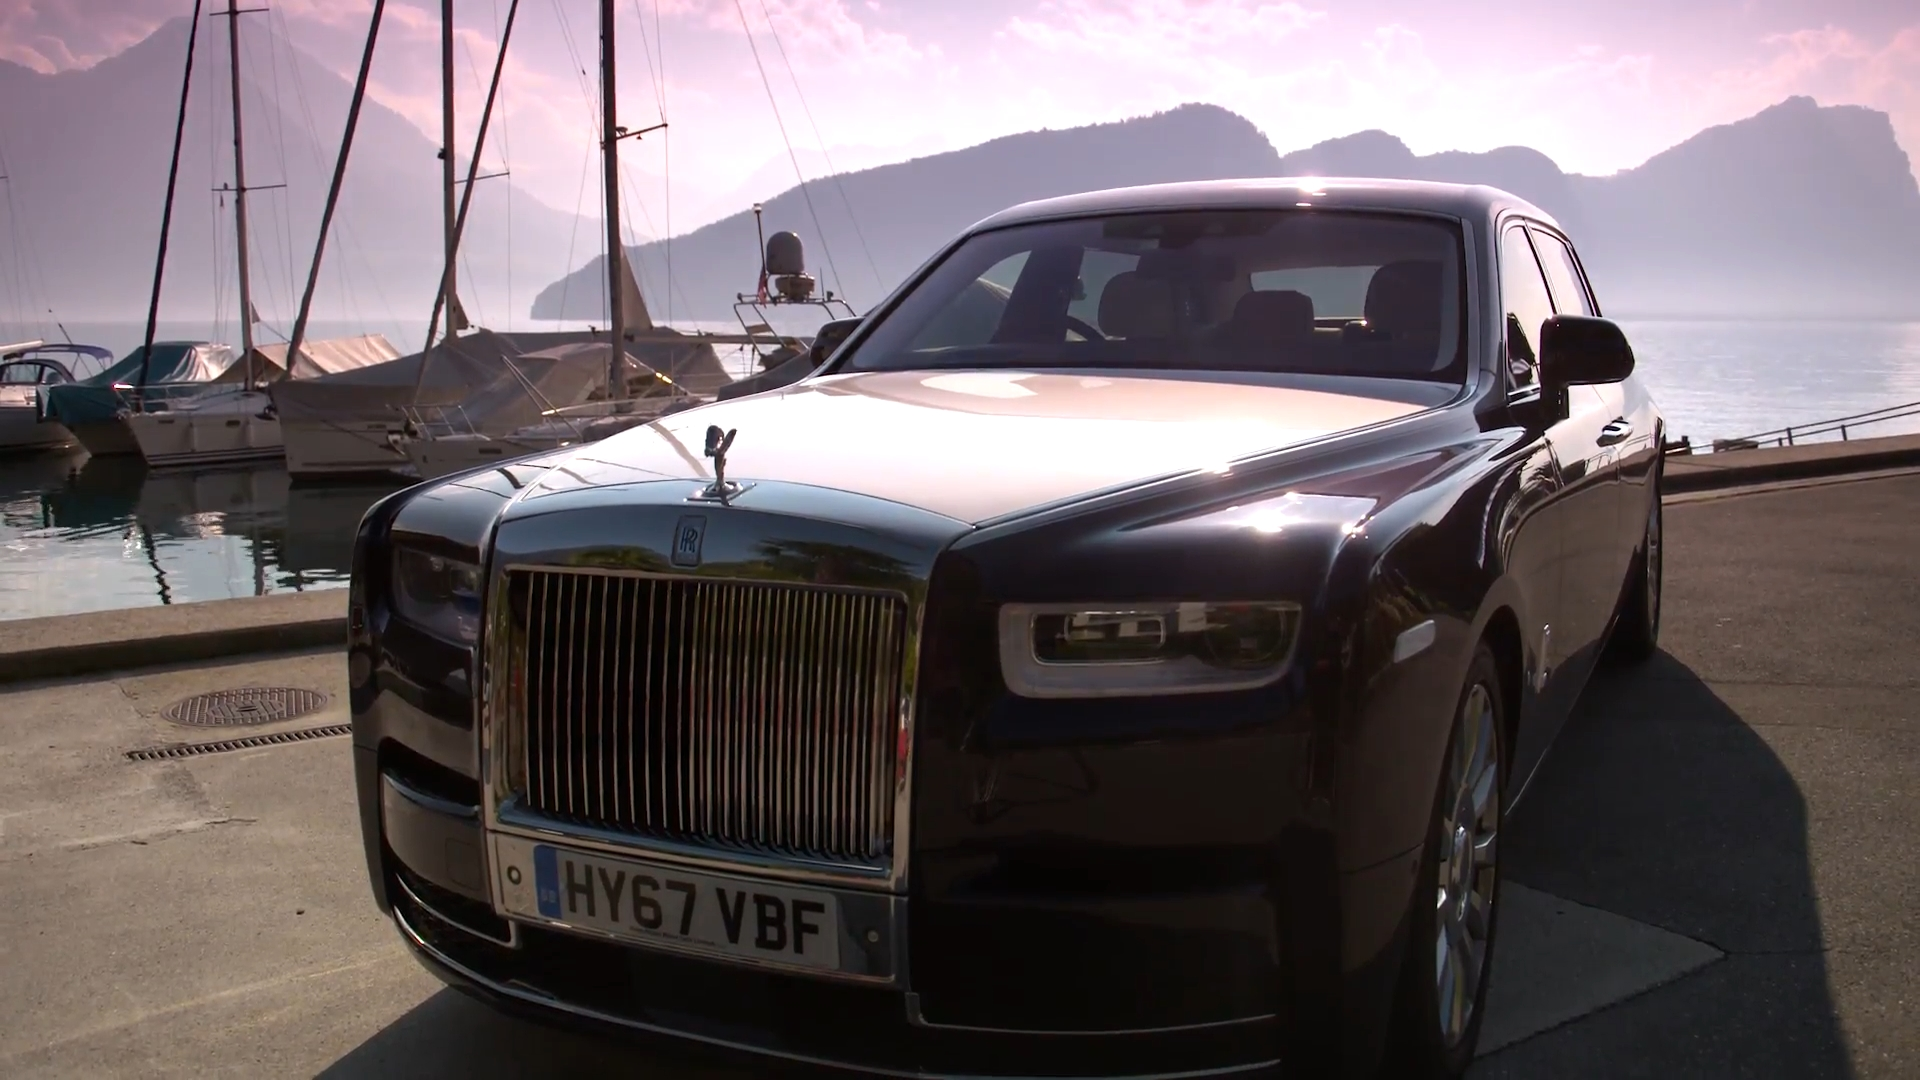 Skepta transforms new Rolls Royce Phantom into rolling recording studio en